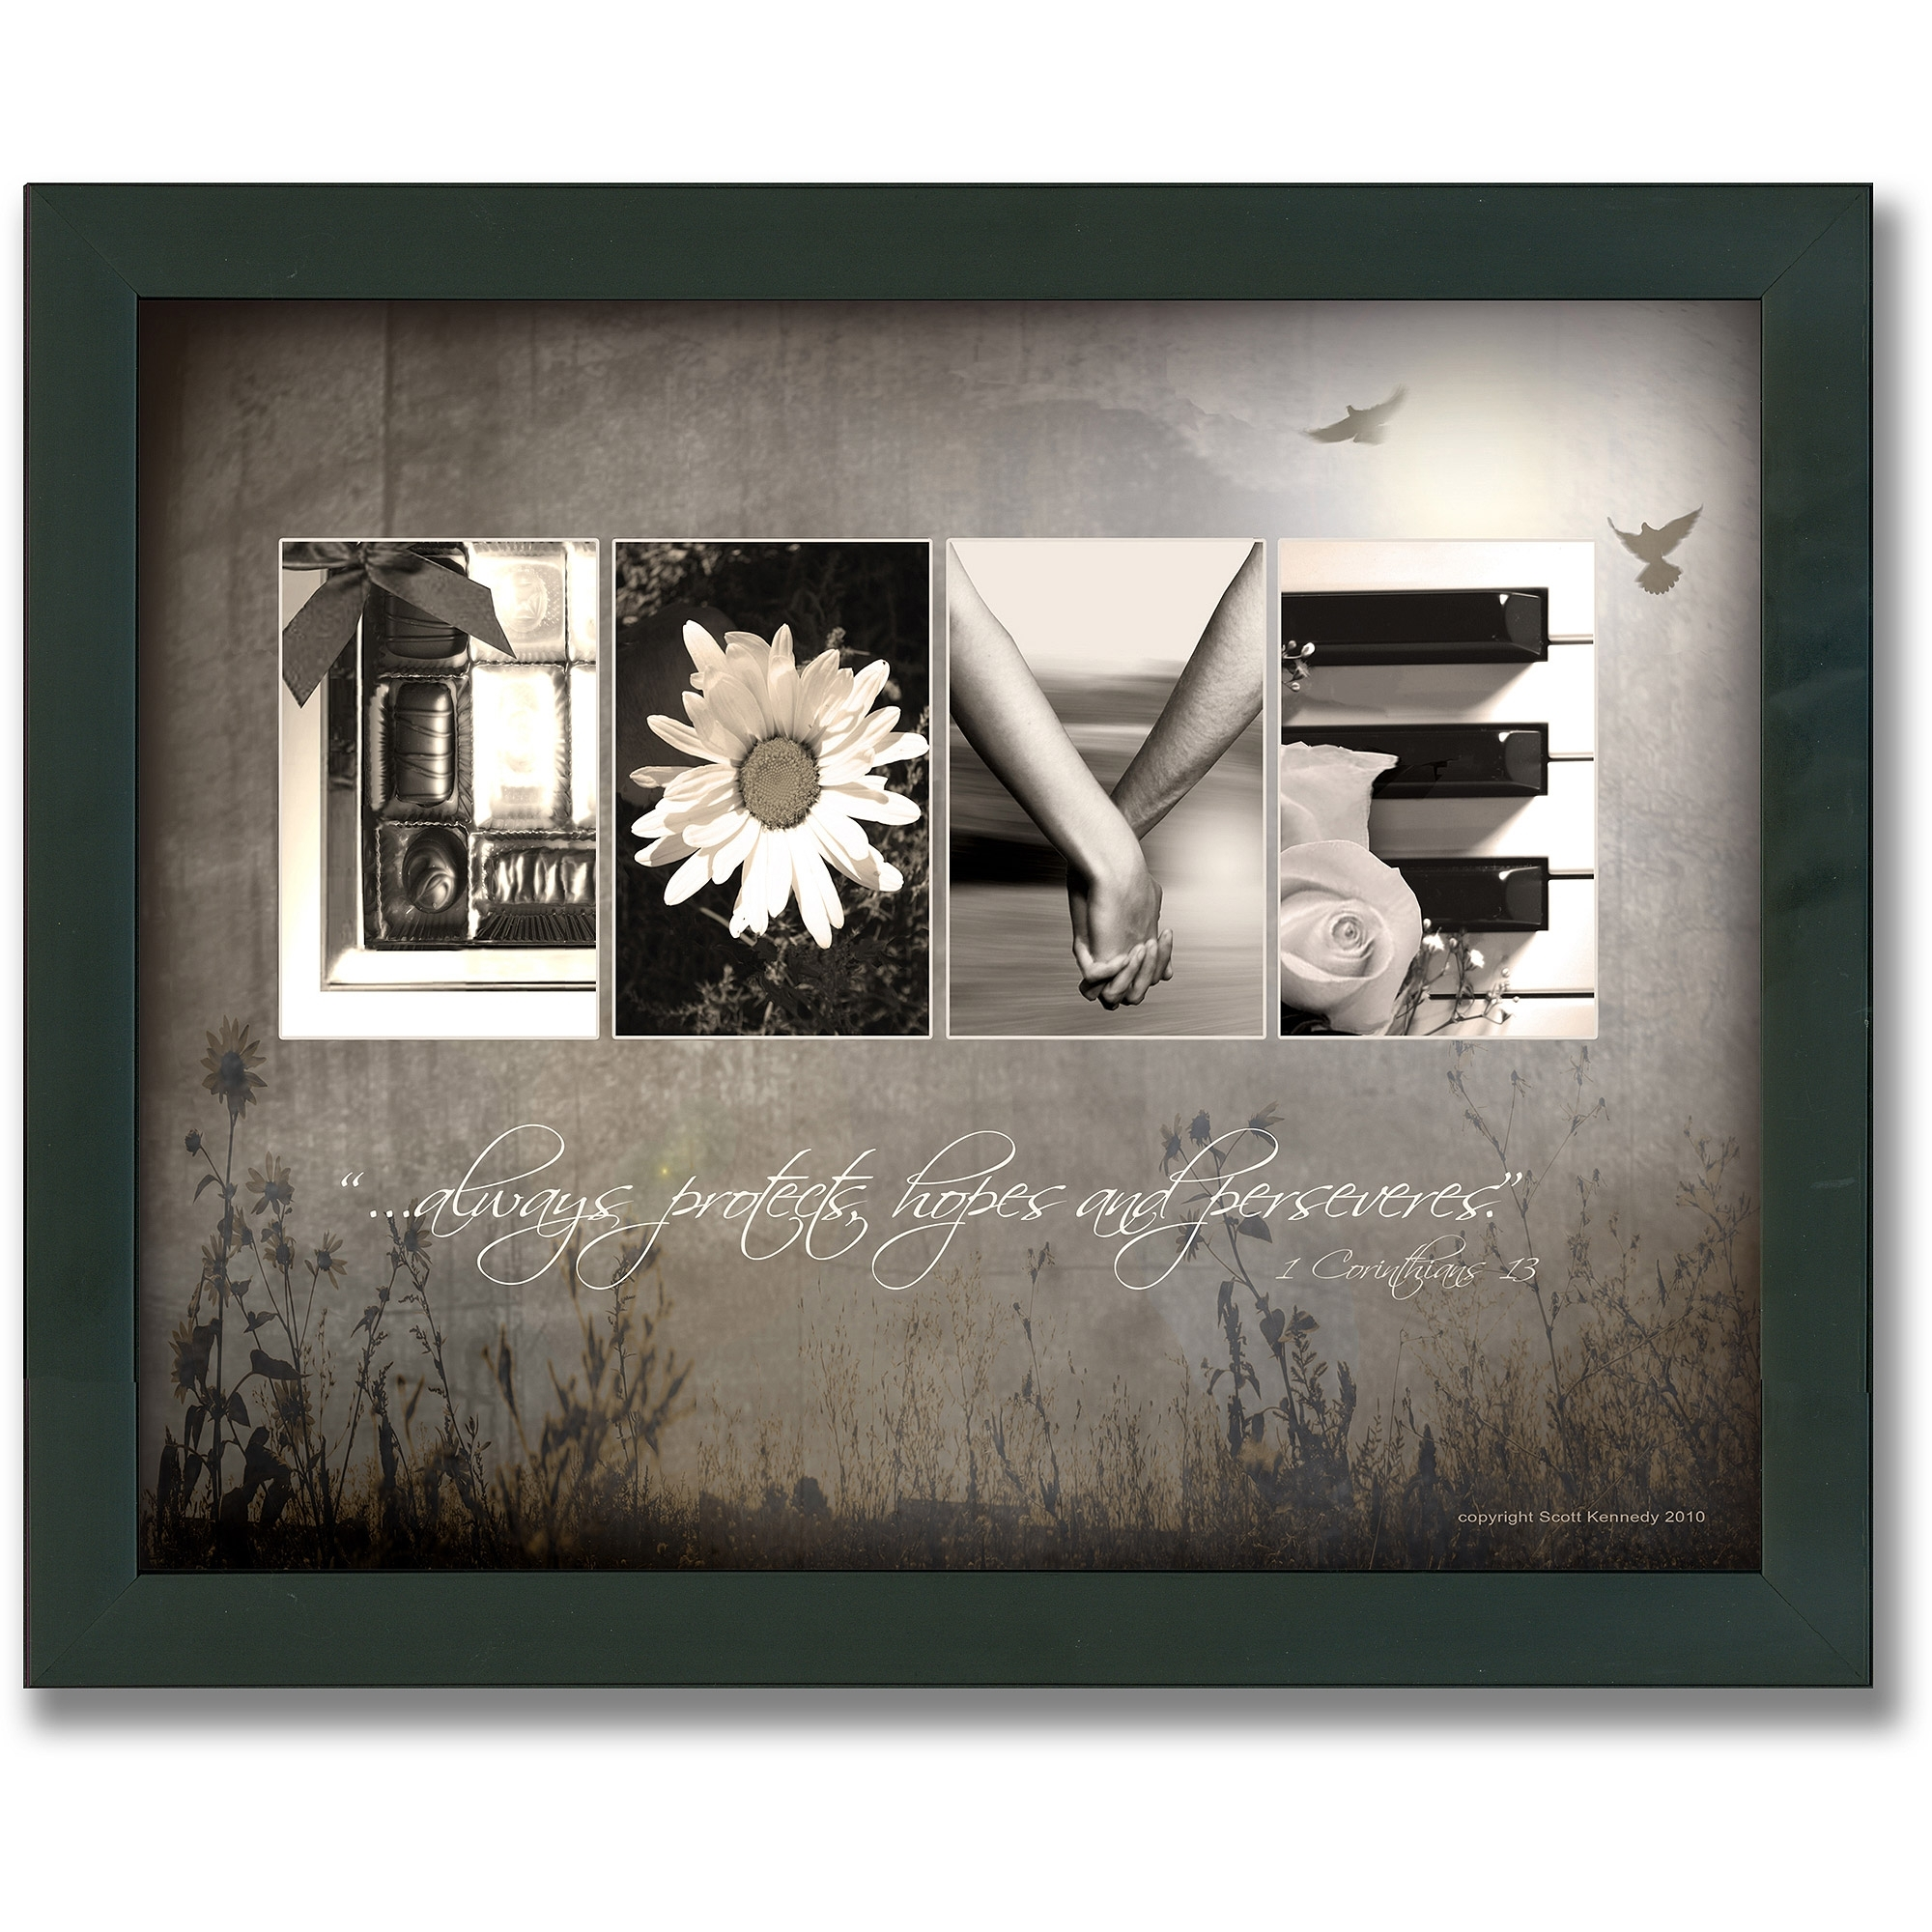 Personal Prints Love Letters Framed Canvas Wall Art – Walmart Pertaining To 2018 Canvas Wall Art At Walmart (View 2 of 15)